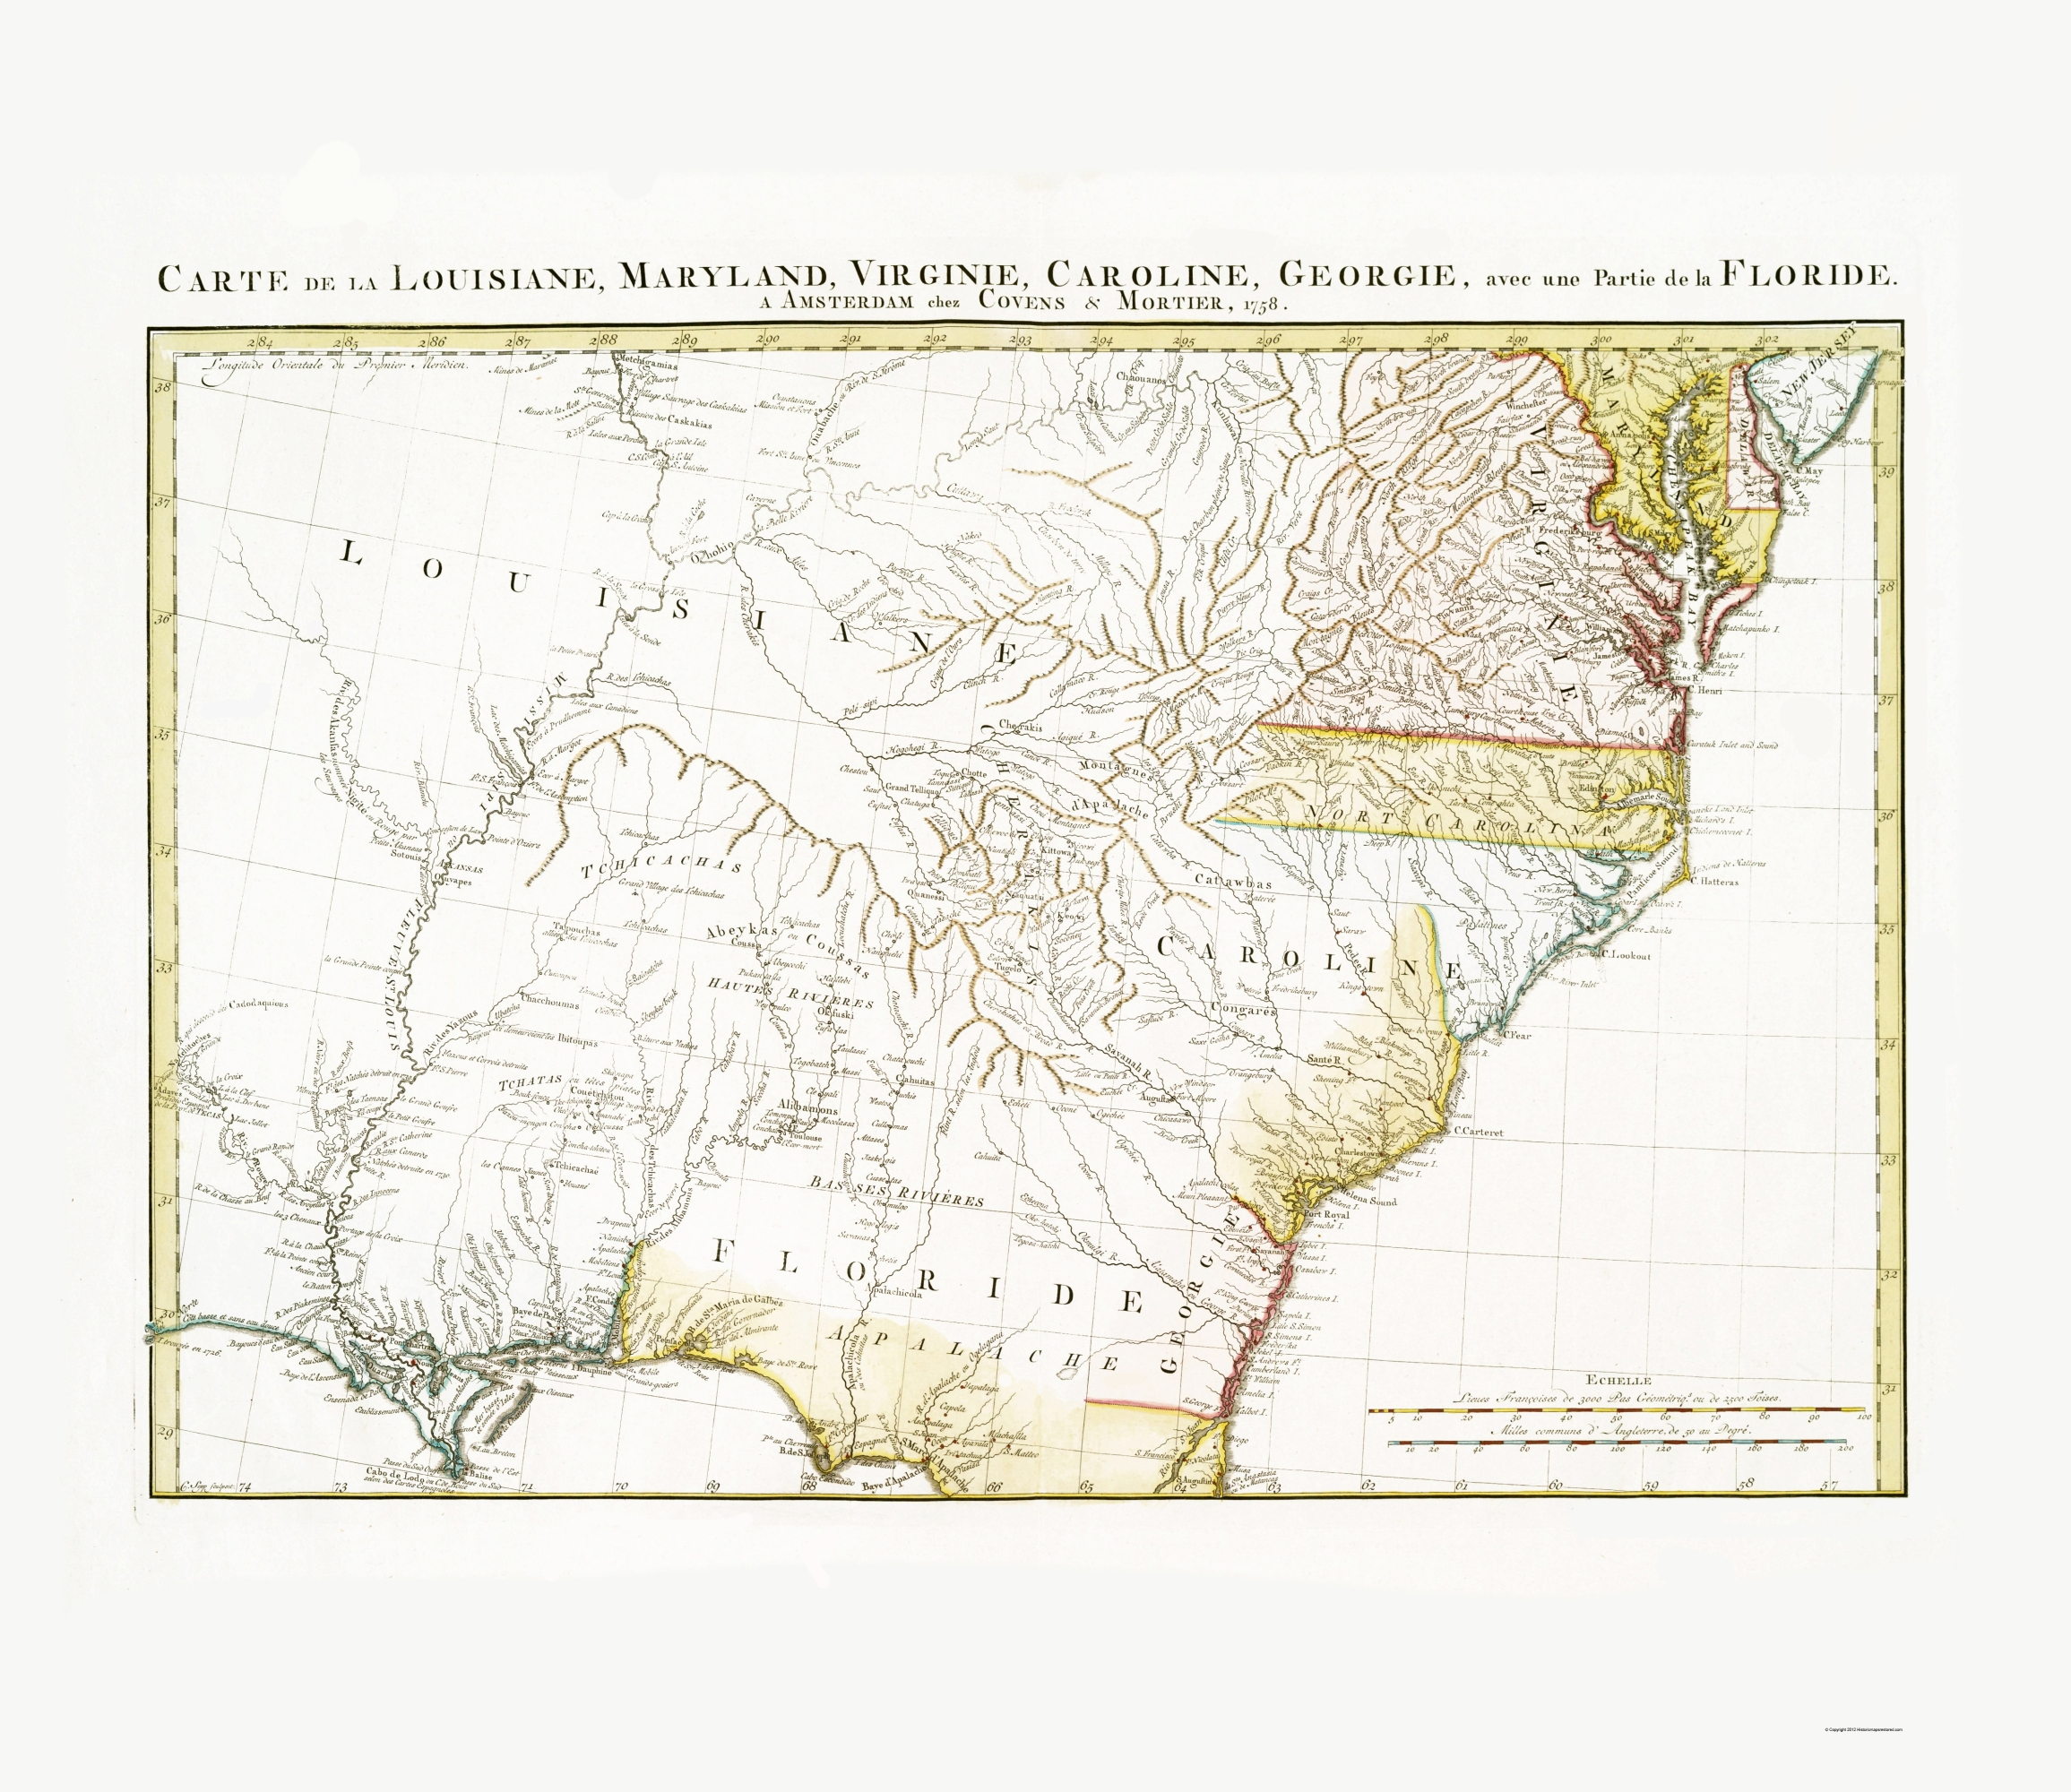 Old State Map - Eastern United States - Covens and Mortier 1758 - 23 x 26 57